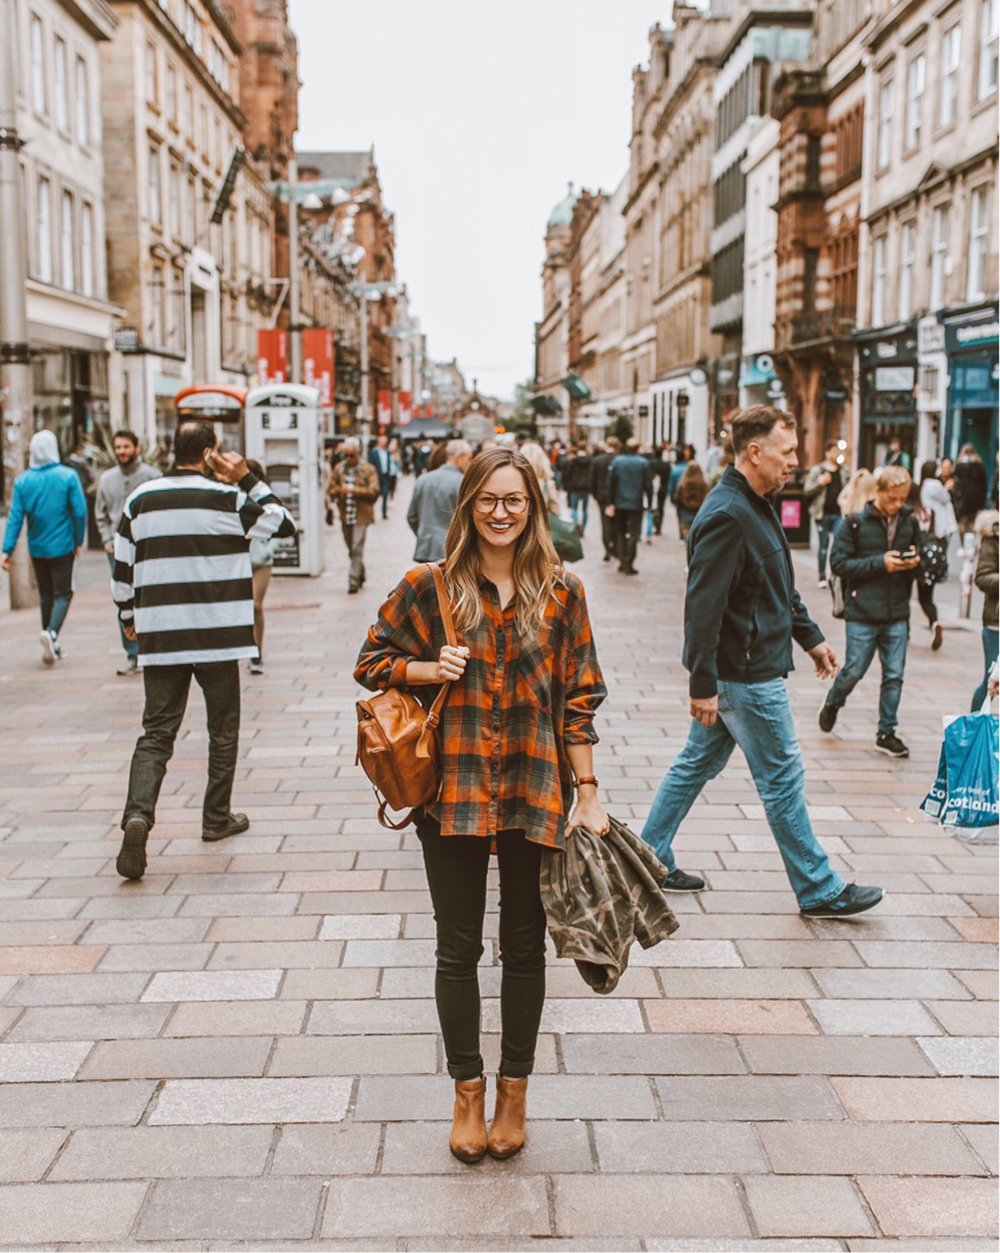 livvyland-blog-olivia-watson-princess-cruise-british-isles-glasgow-scotland-united-kingdon-what-to-wear-pack-itinerary-2